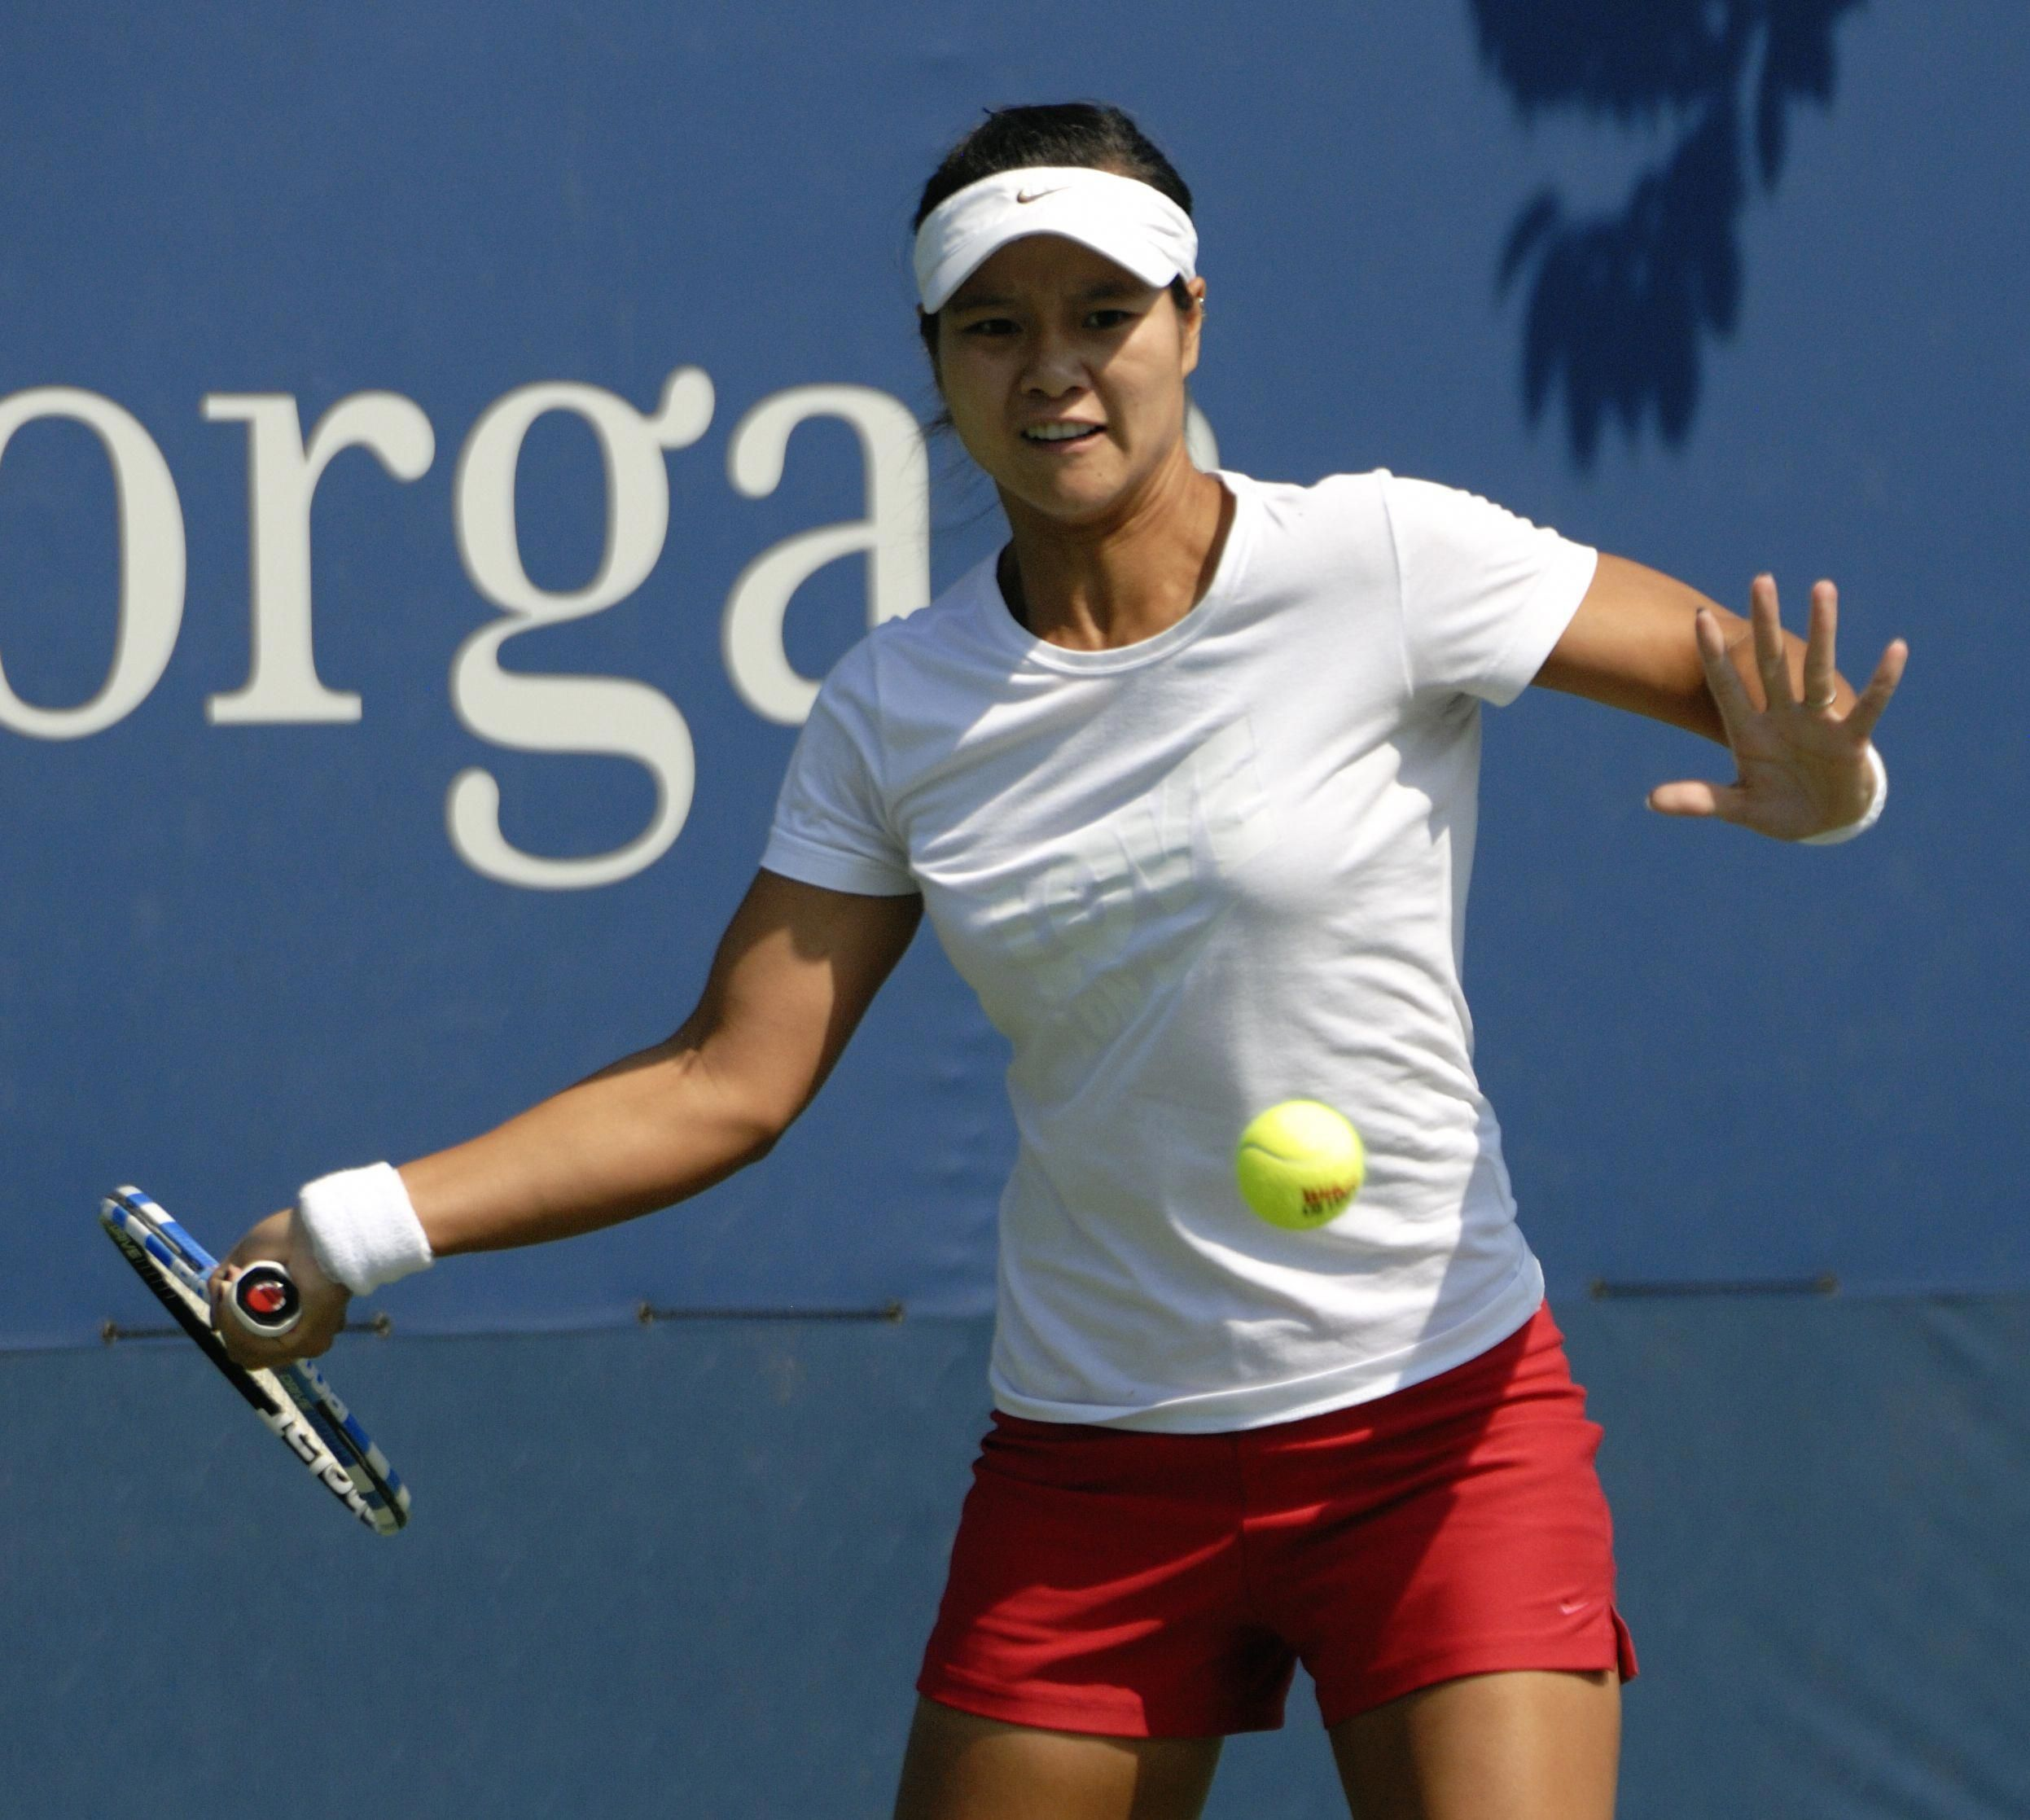 Li Na Is A Chinese Professional Tennis Player Who Is Currently Ranked World No 2 By The Women S Tennis Association Play Tennis How To Play Tennis Tennis Games